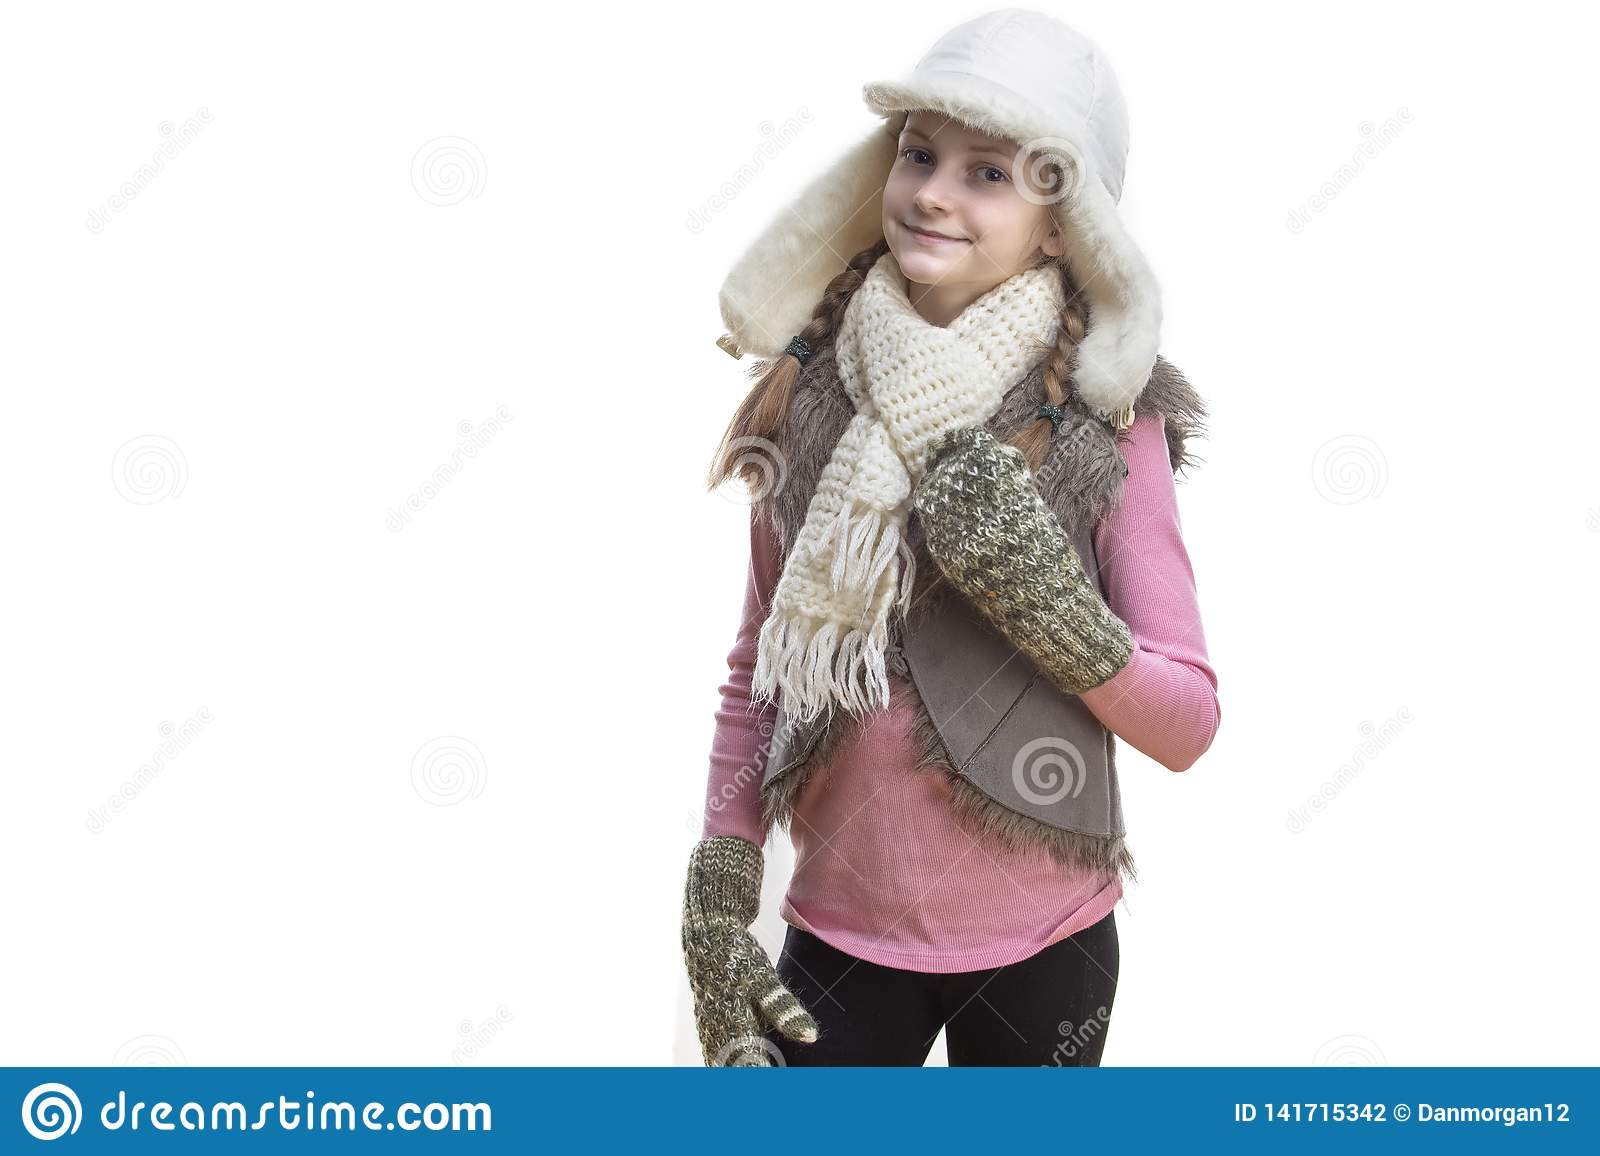 a8c3183f49e Winter Kids Fashion And Holidays Ideas. Smiling Caucasian Girl In Pink Vest  and White Winter Hat